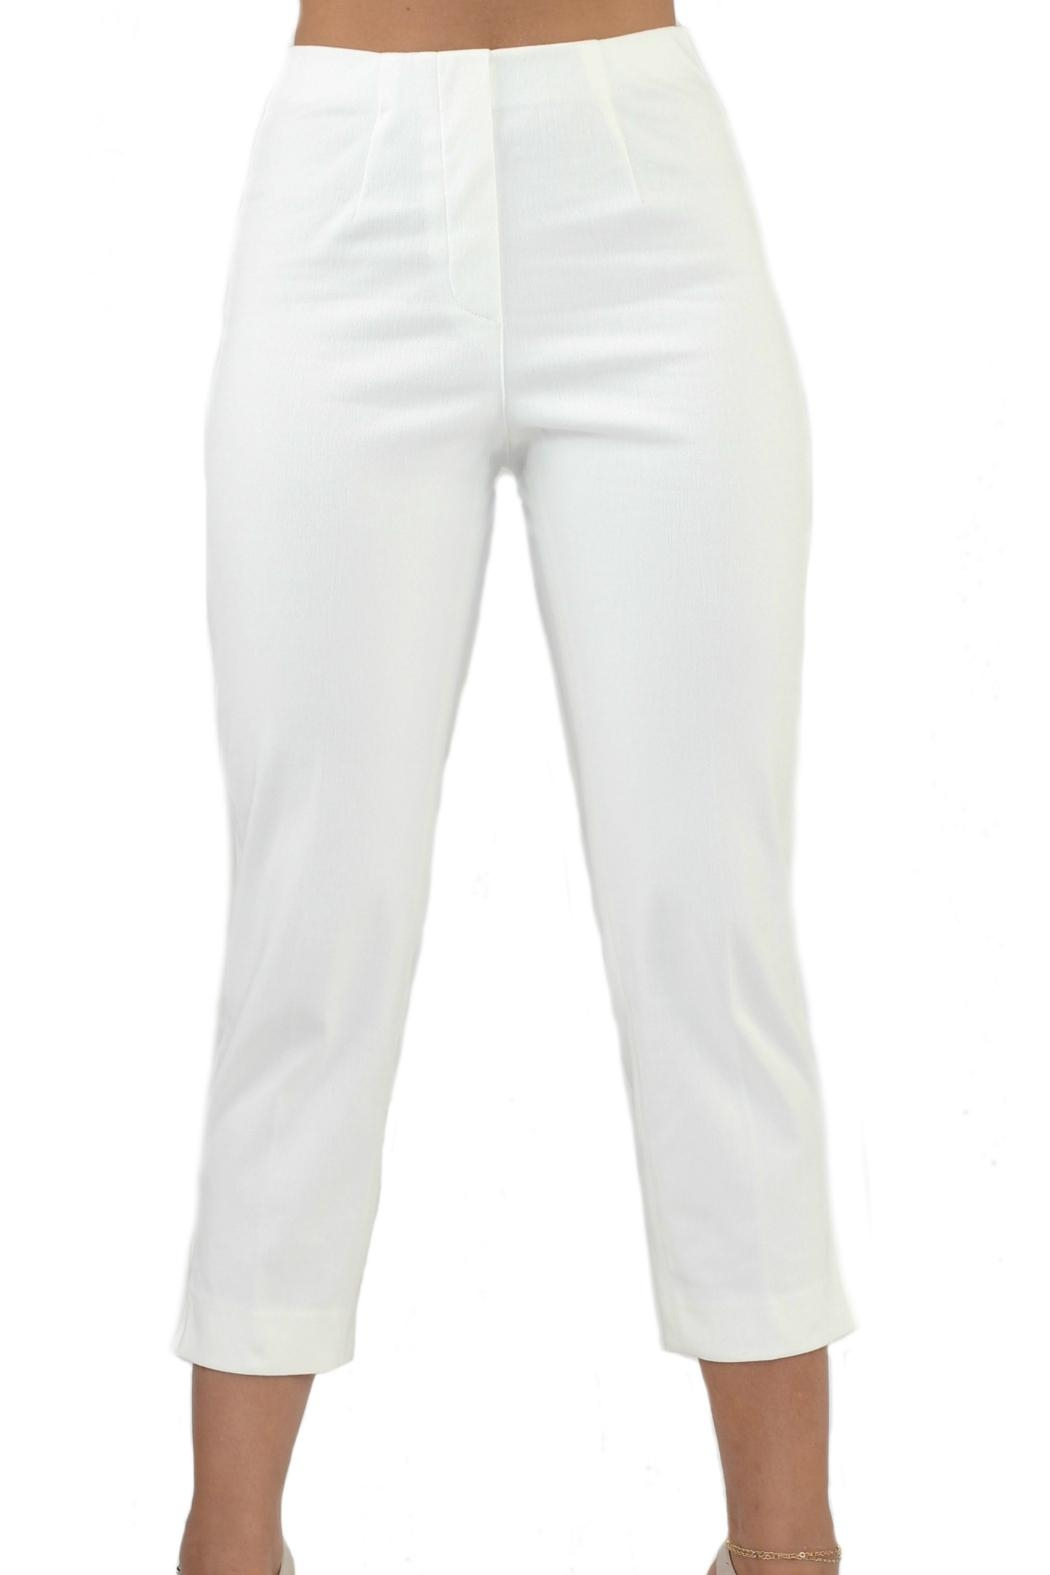 Lior Paris White Denim Capri - Main Image